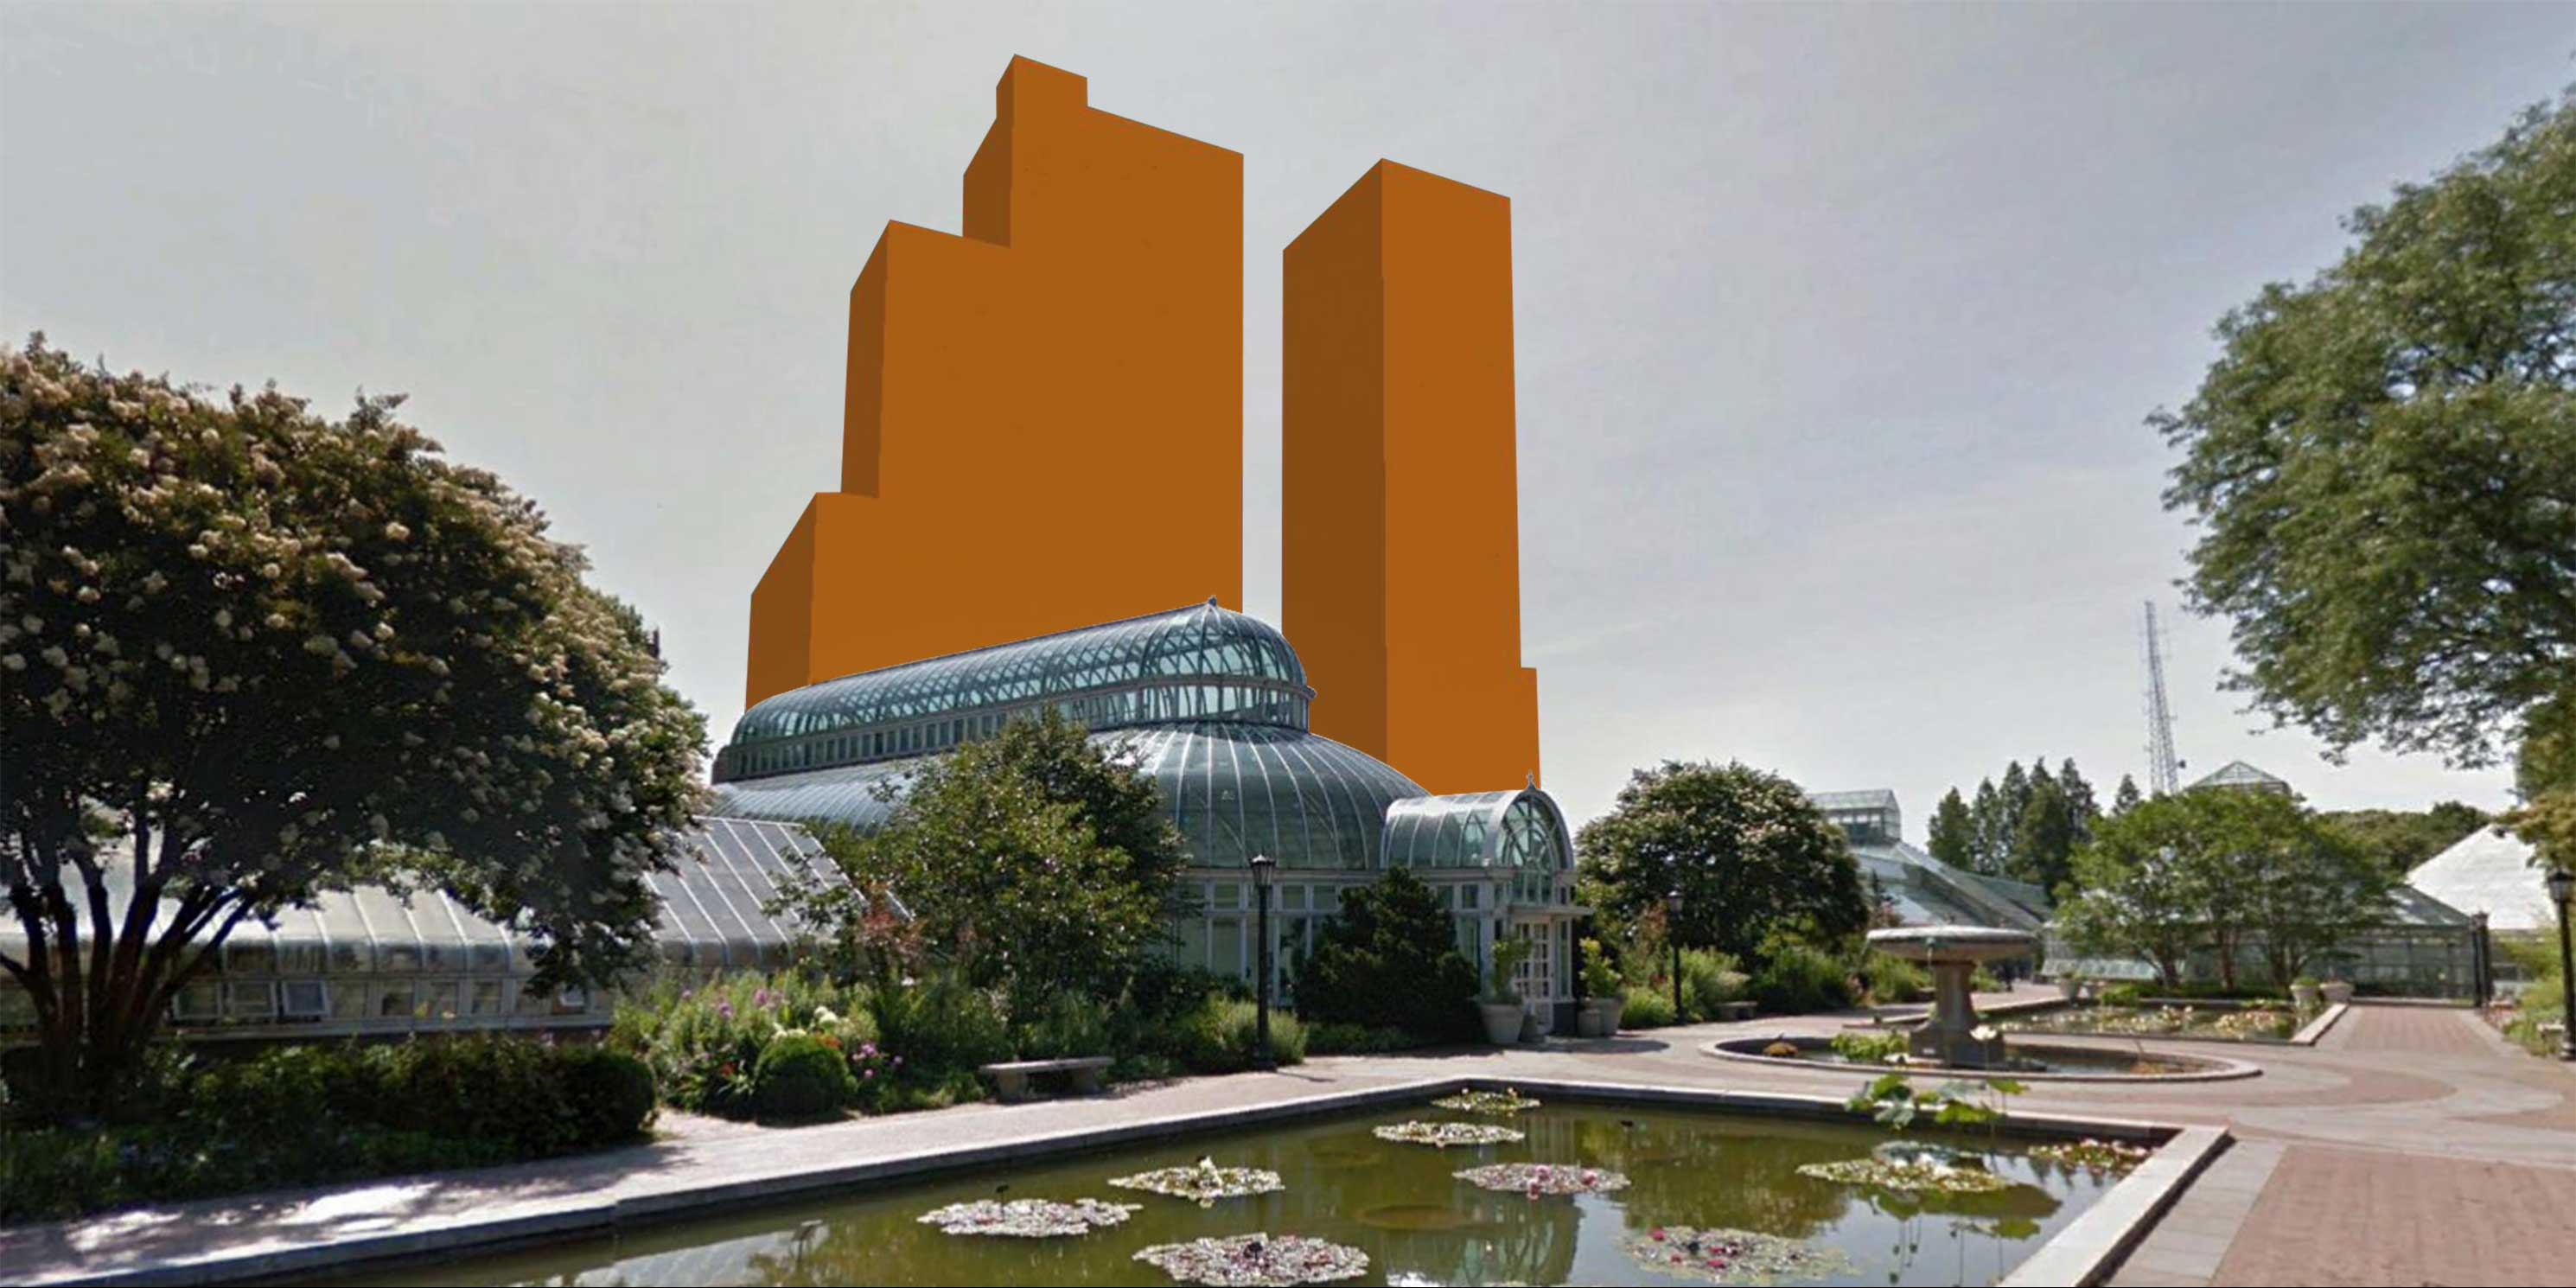 Conservatory at the Brooklyn Botanic Garden with proposed super-tall buildings at 960 Franklin Avenue in background